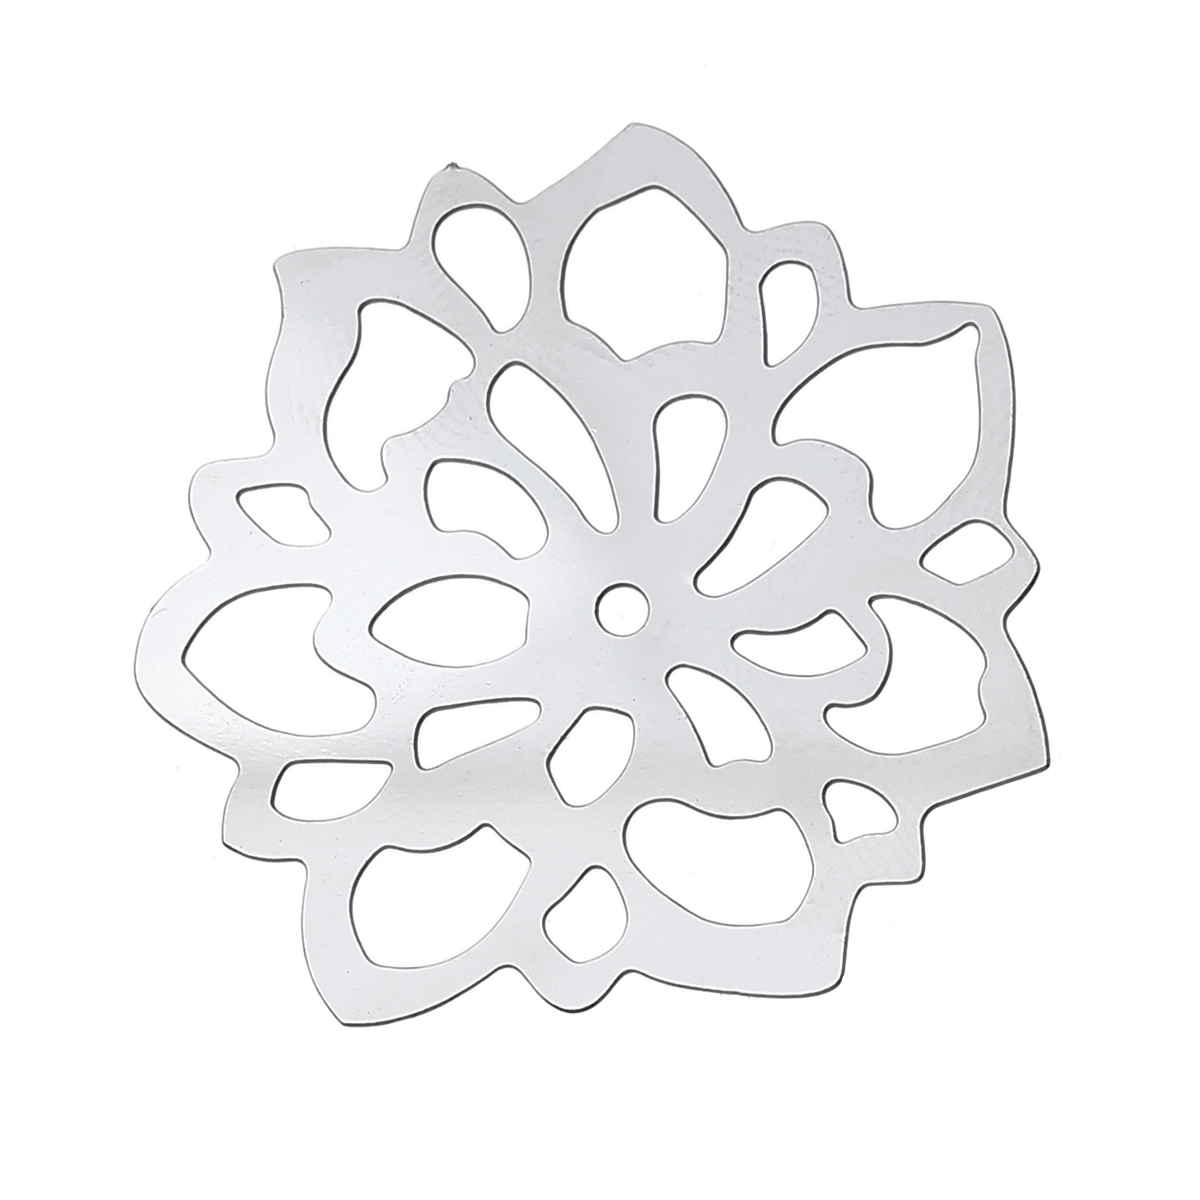 DoreenBeads Filigree Stainless Steel Embellishments Findings Flower Silver Tone Hollow 35mm(1 3/8) x 34mm(1 3/8), 1 PieceDoreenBeads Filigree Stainless Steel Embellishments Findings Flower Silver Tone Hollow 35mm(1 3/8) x 34mm(1 3/8), 1 Piece